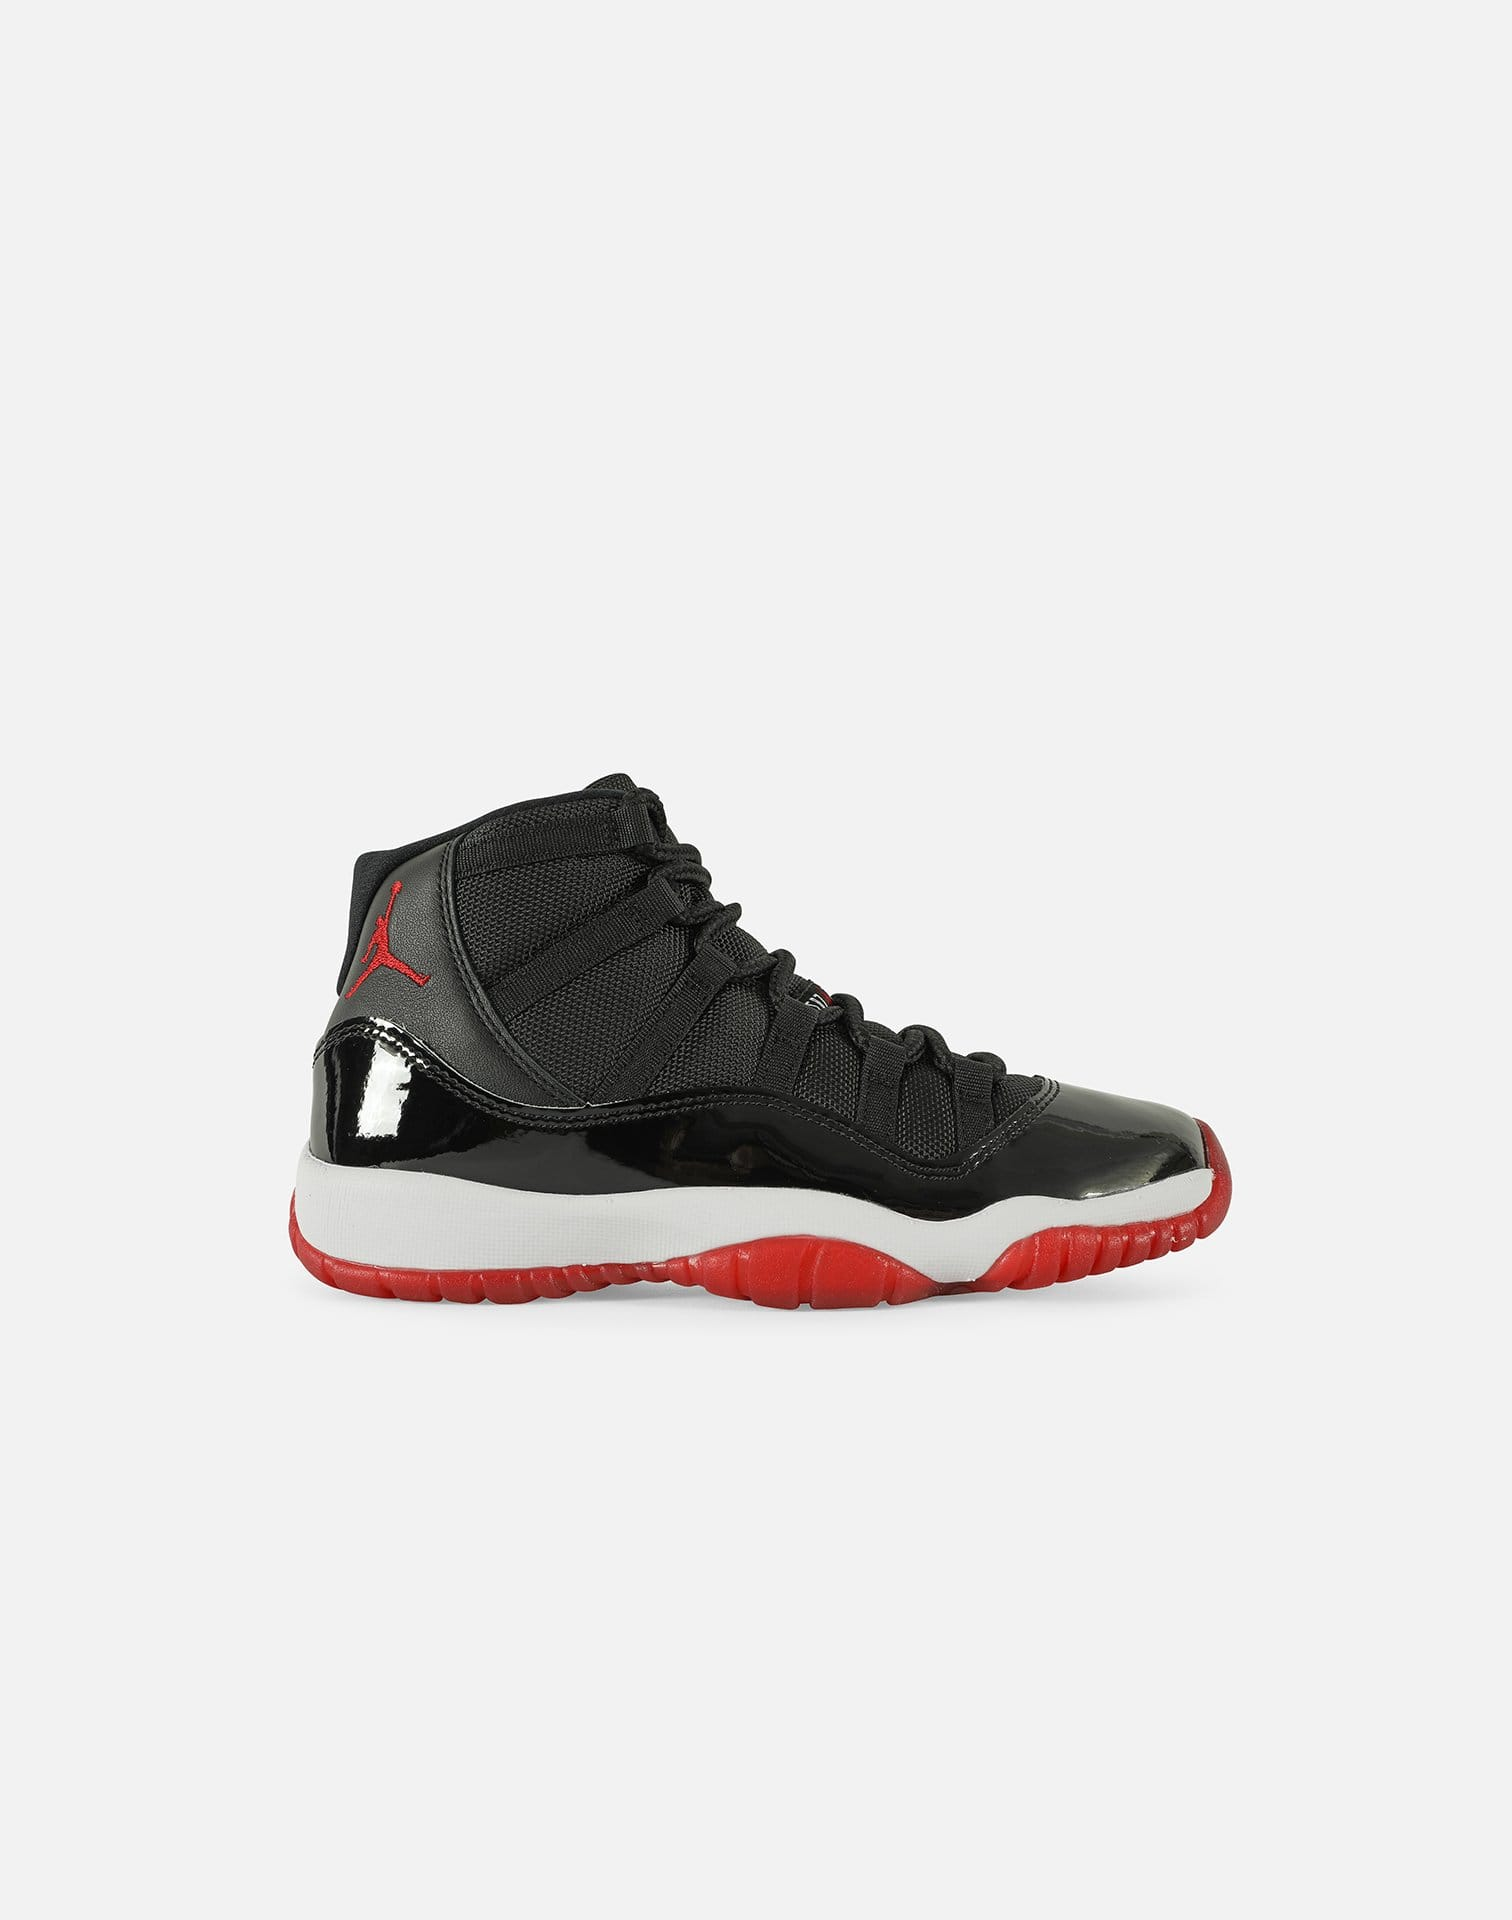 Jordan AIR JORDAN RETRO 11 'BRED' GRADE-SCHOOL